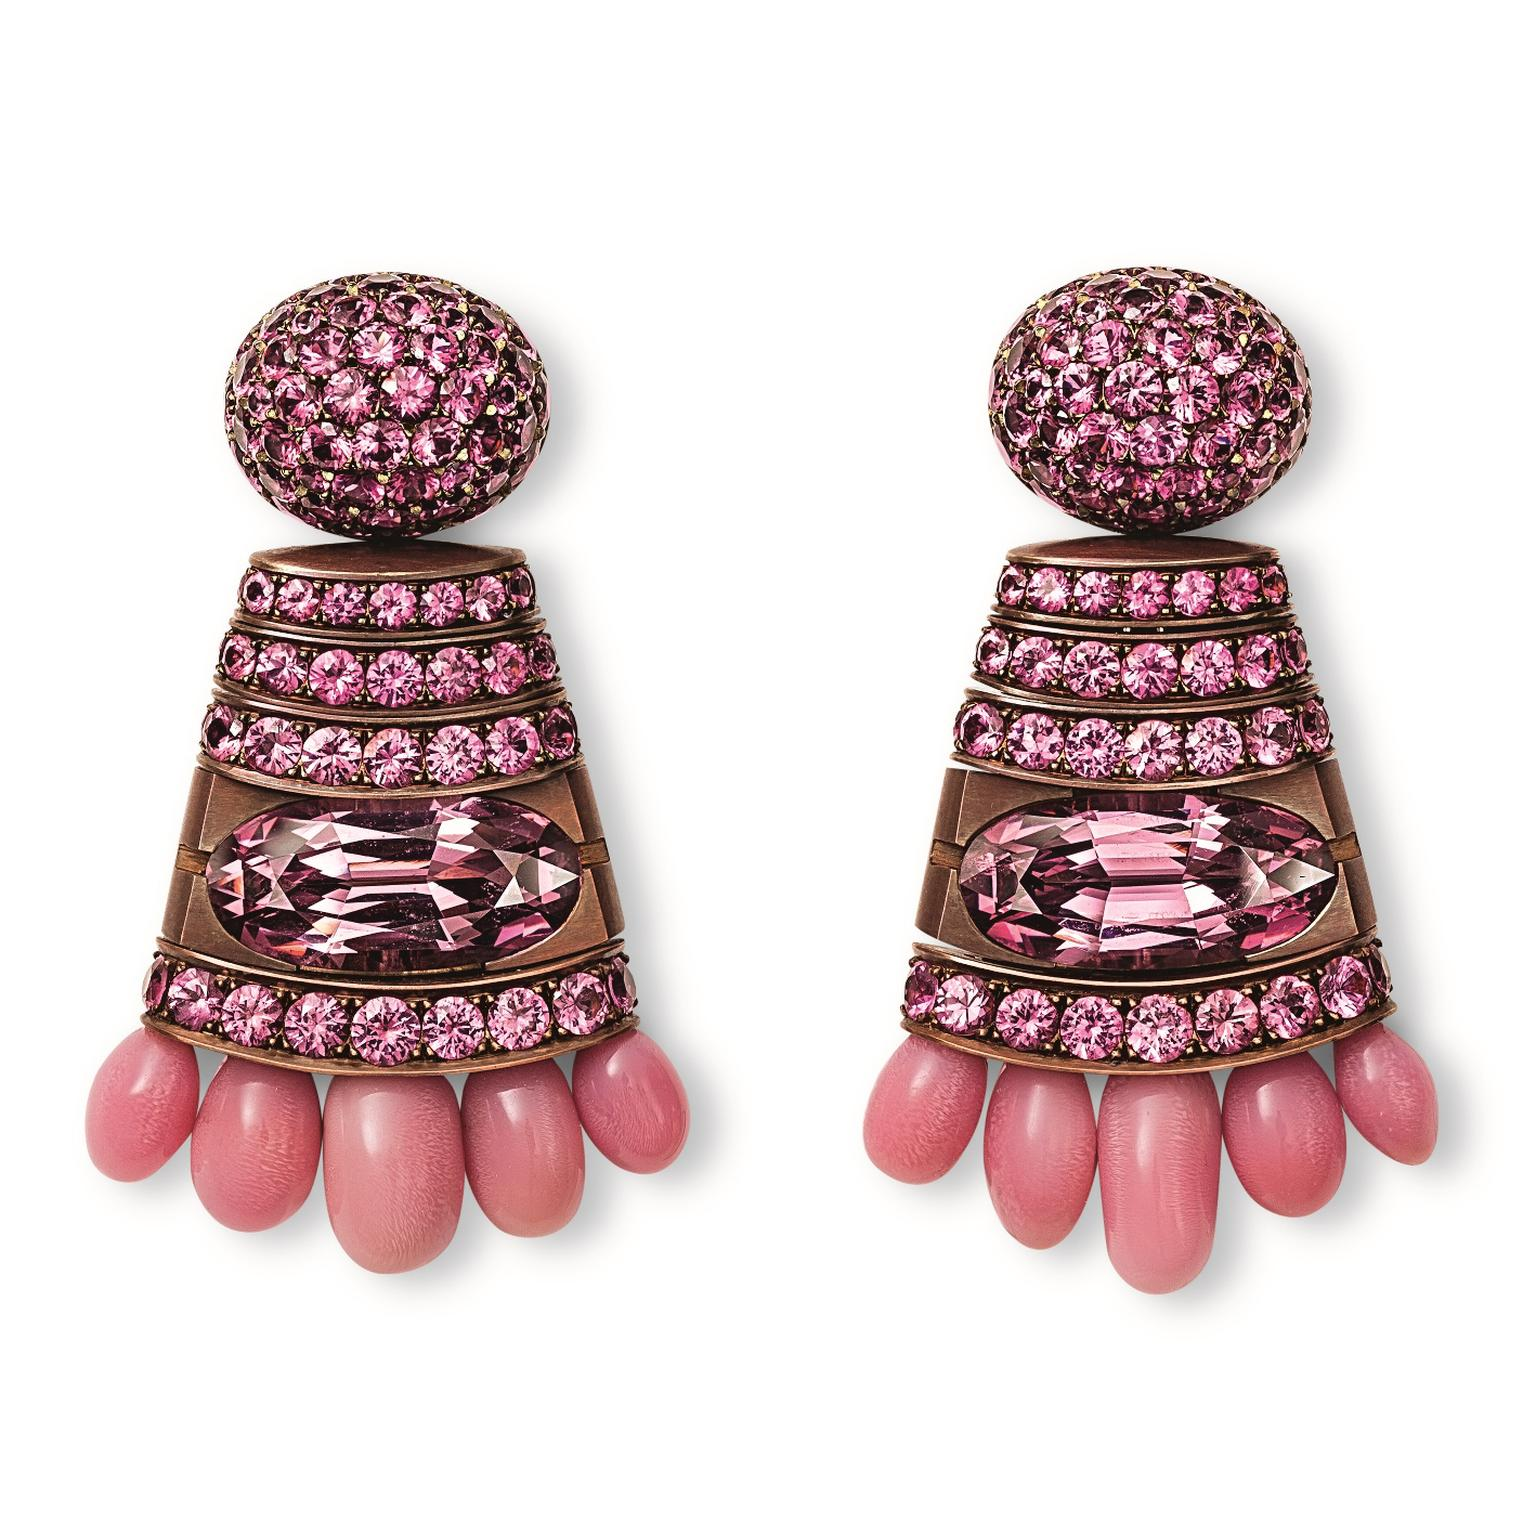 Hemmerle pink conch pearl earrings